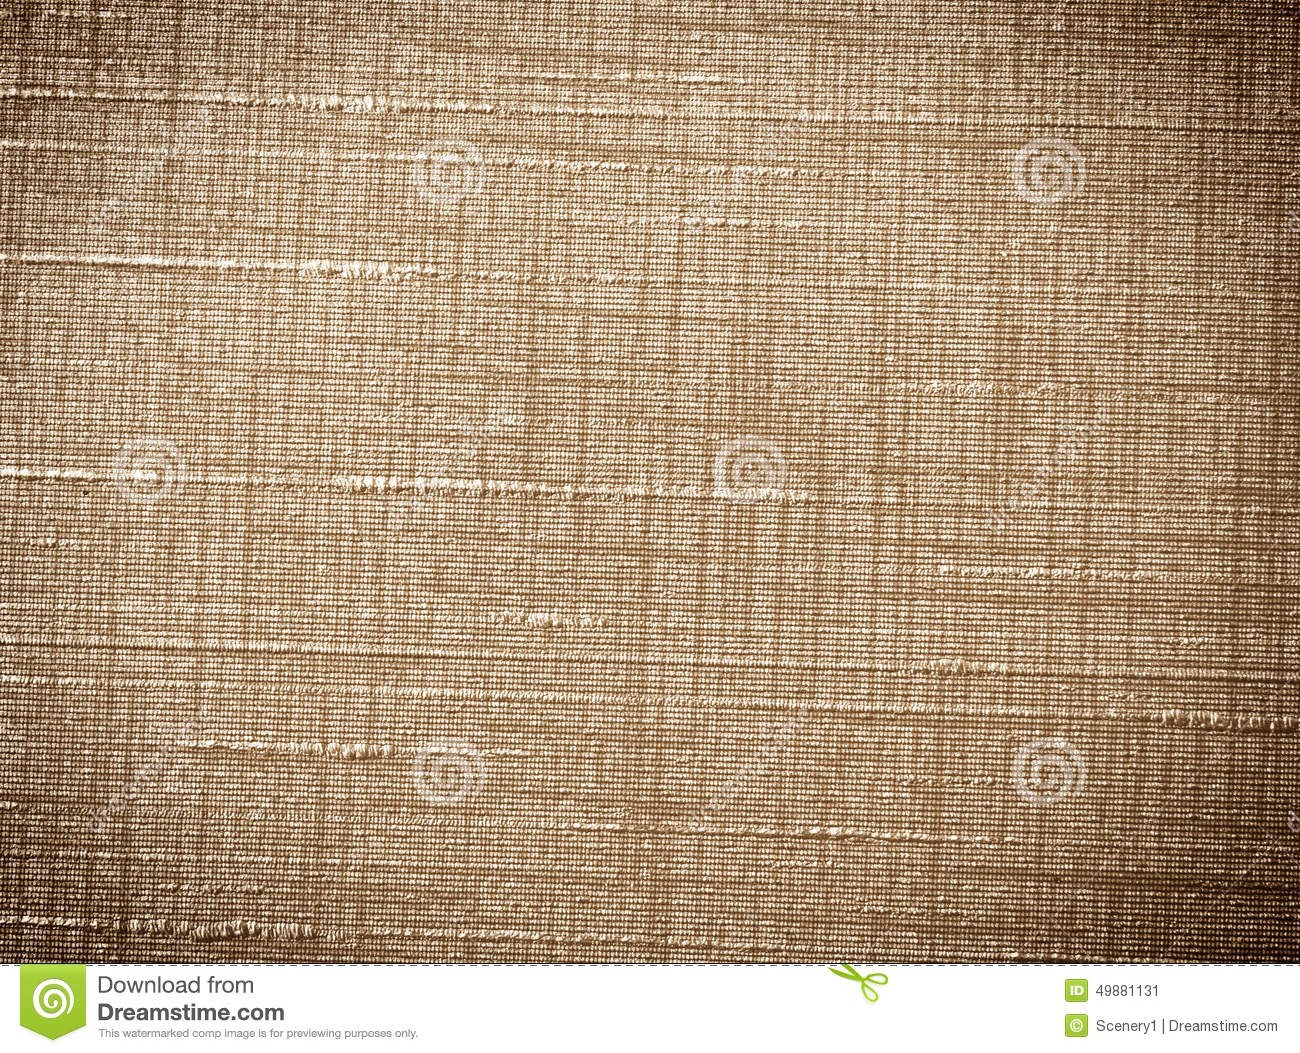 Vinyl wallpaper wall stock photo image 49881131 for Vinyl wallpaper for walls